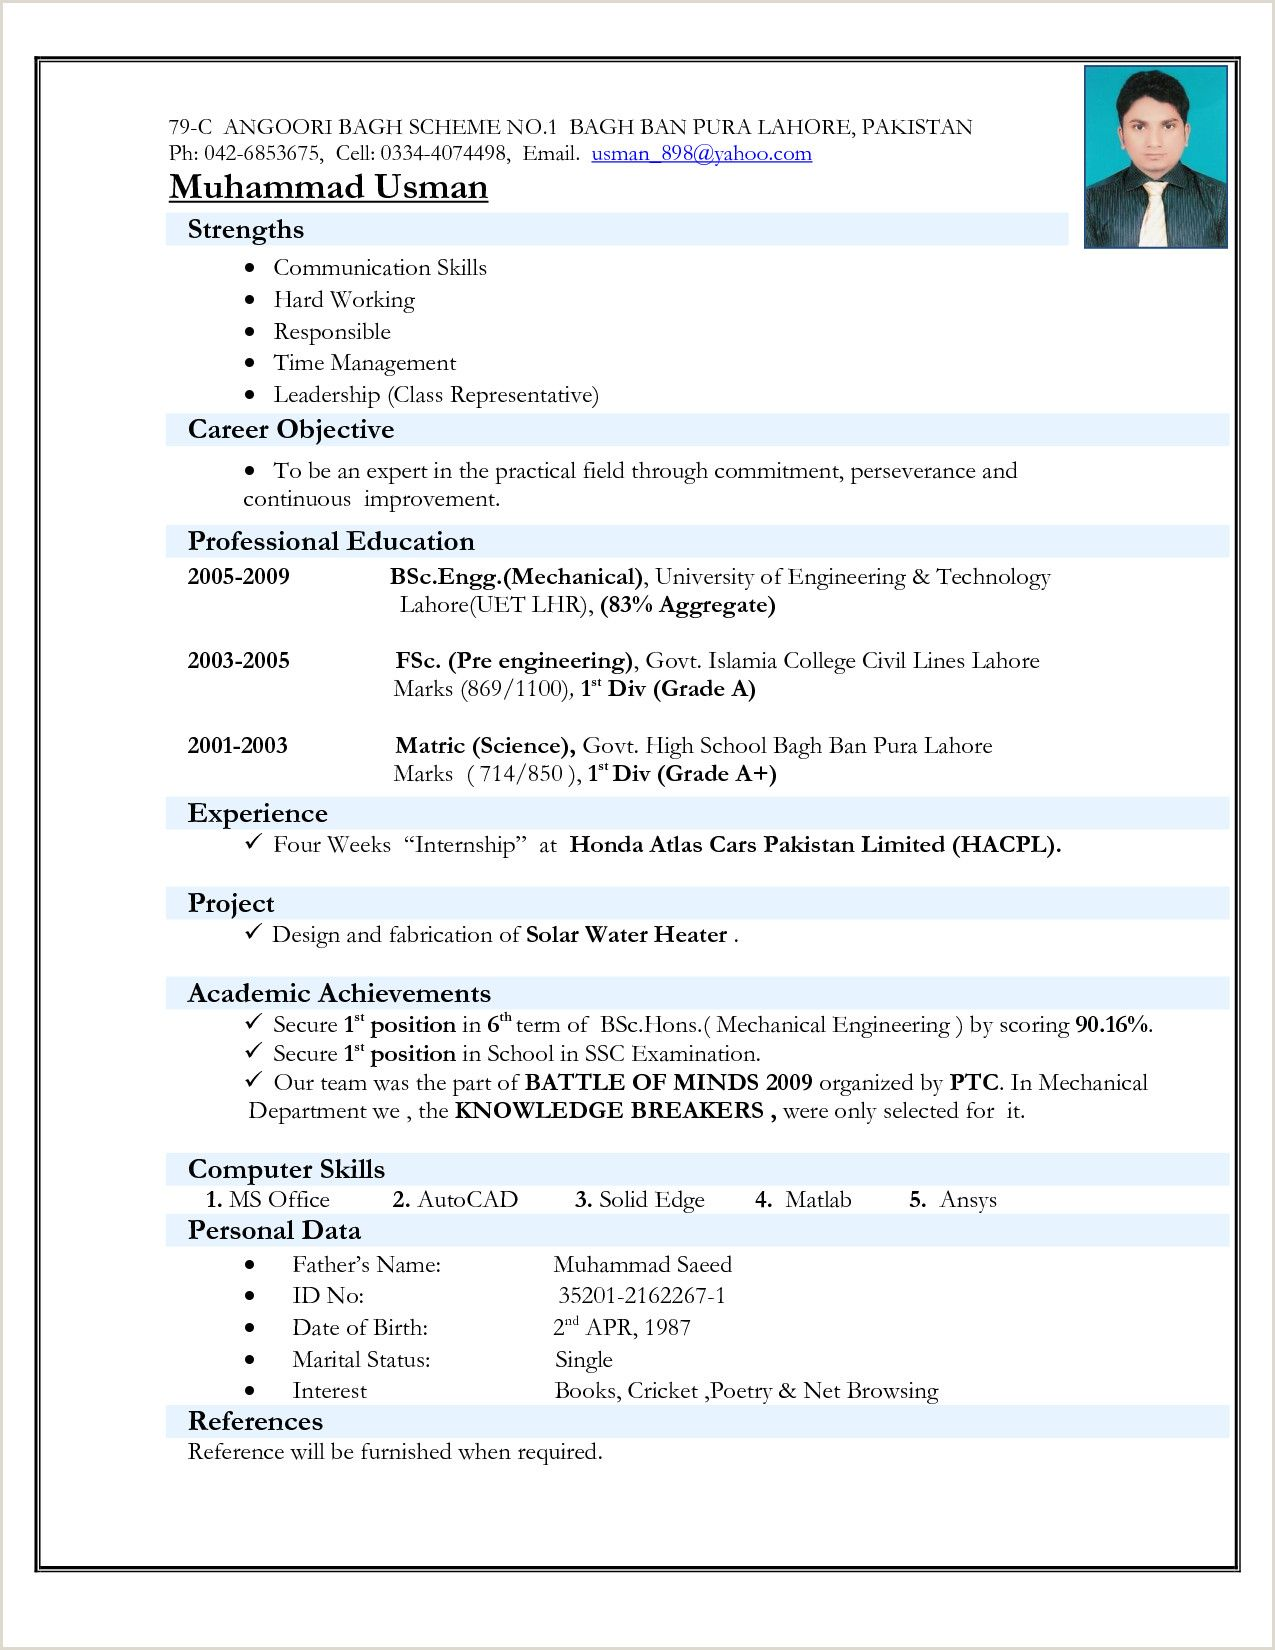 basic resume format for freshers best examples accenture status warehouse worker job Resume Basic Resume Format For Freshers